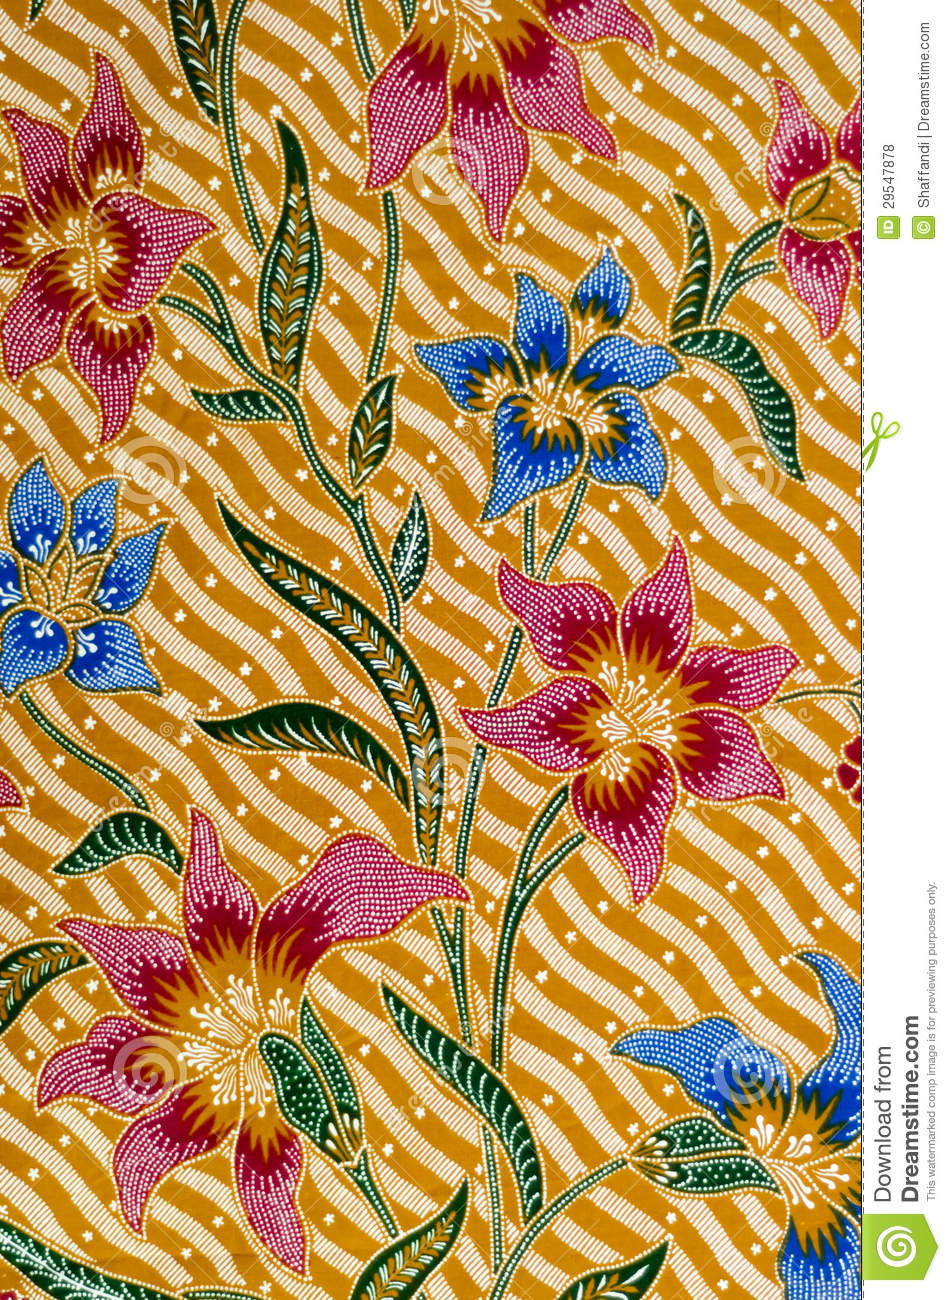 Batik Design Stock Photo. Image Of Intricate, Floral